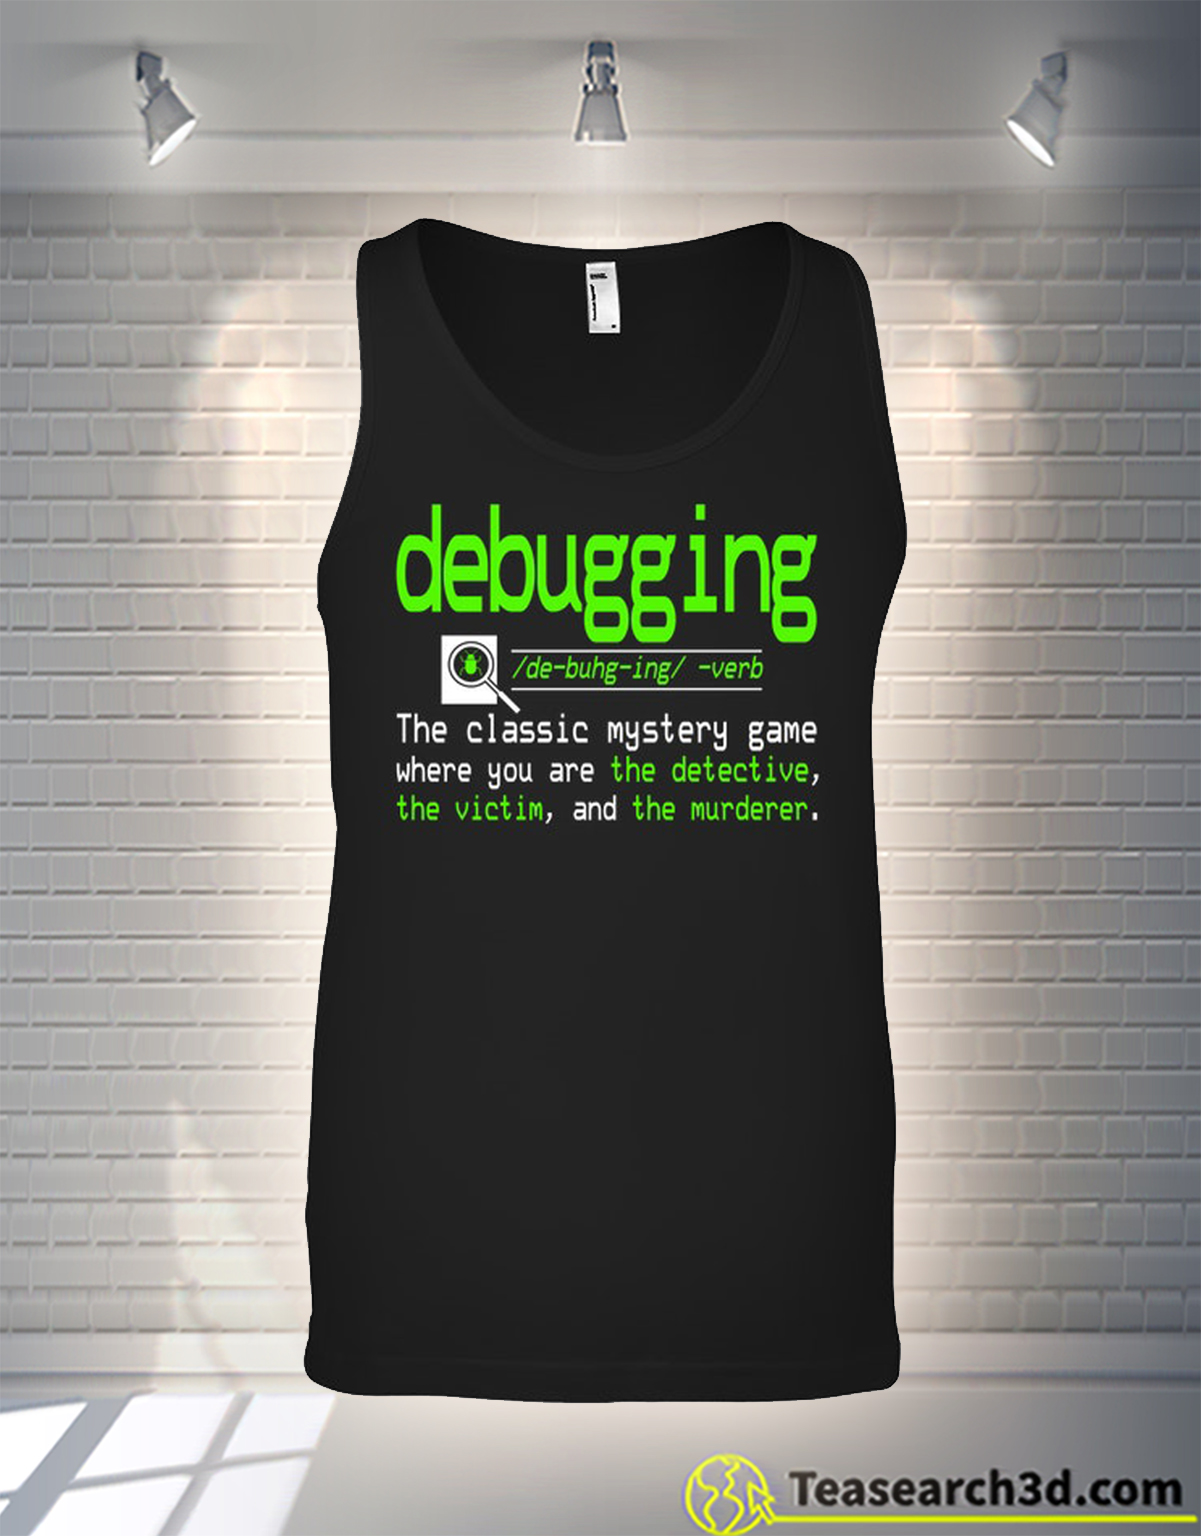 Debugging definition the classic mystery game tank